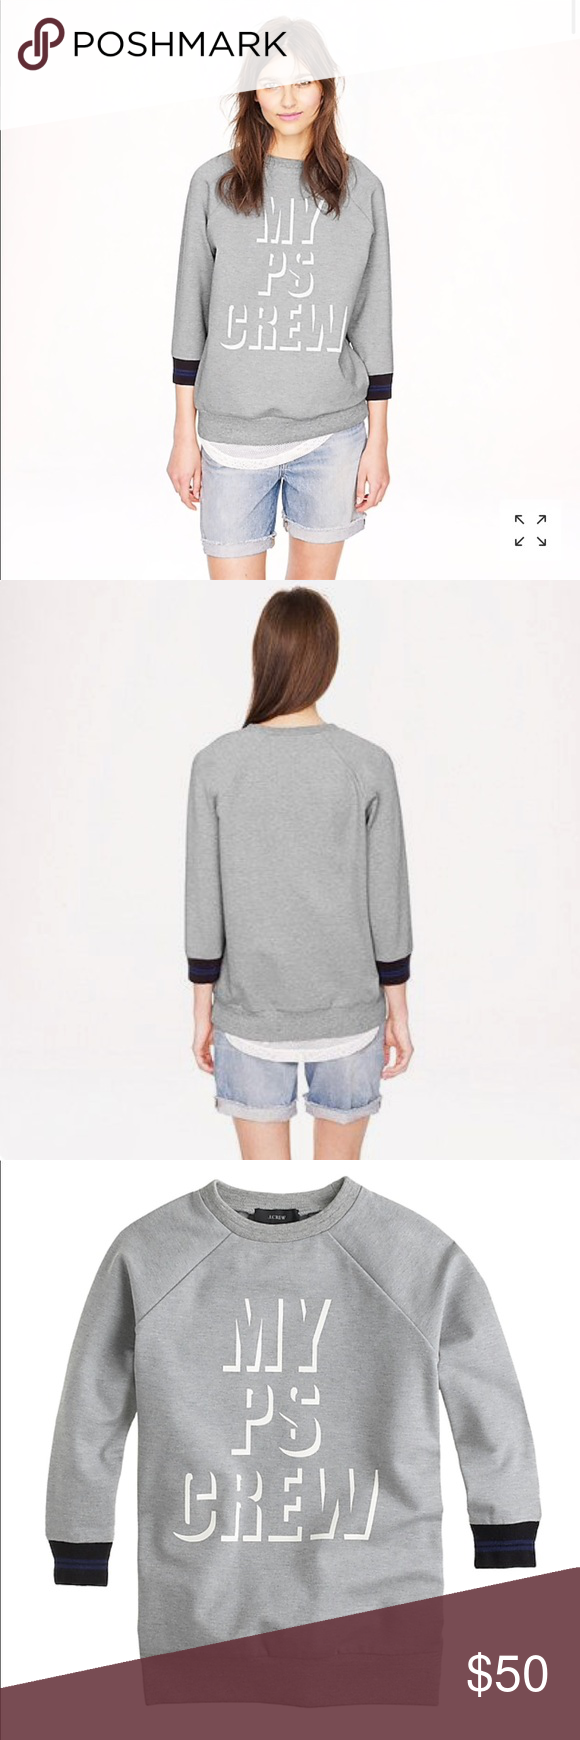 J.Crew X Public School Sweatshirt Worn Lightly. ABSOLUTELY